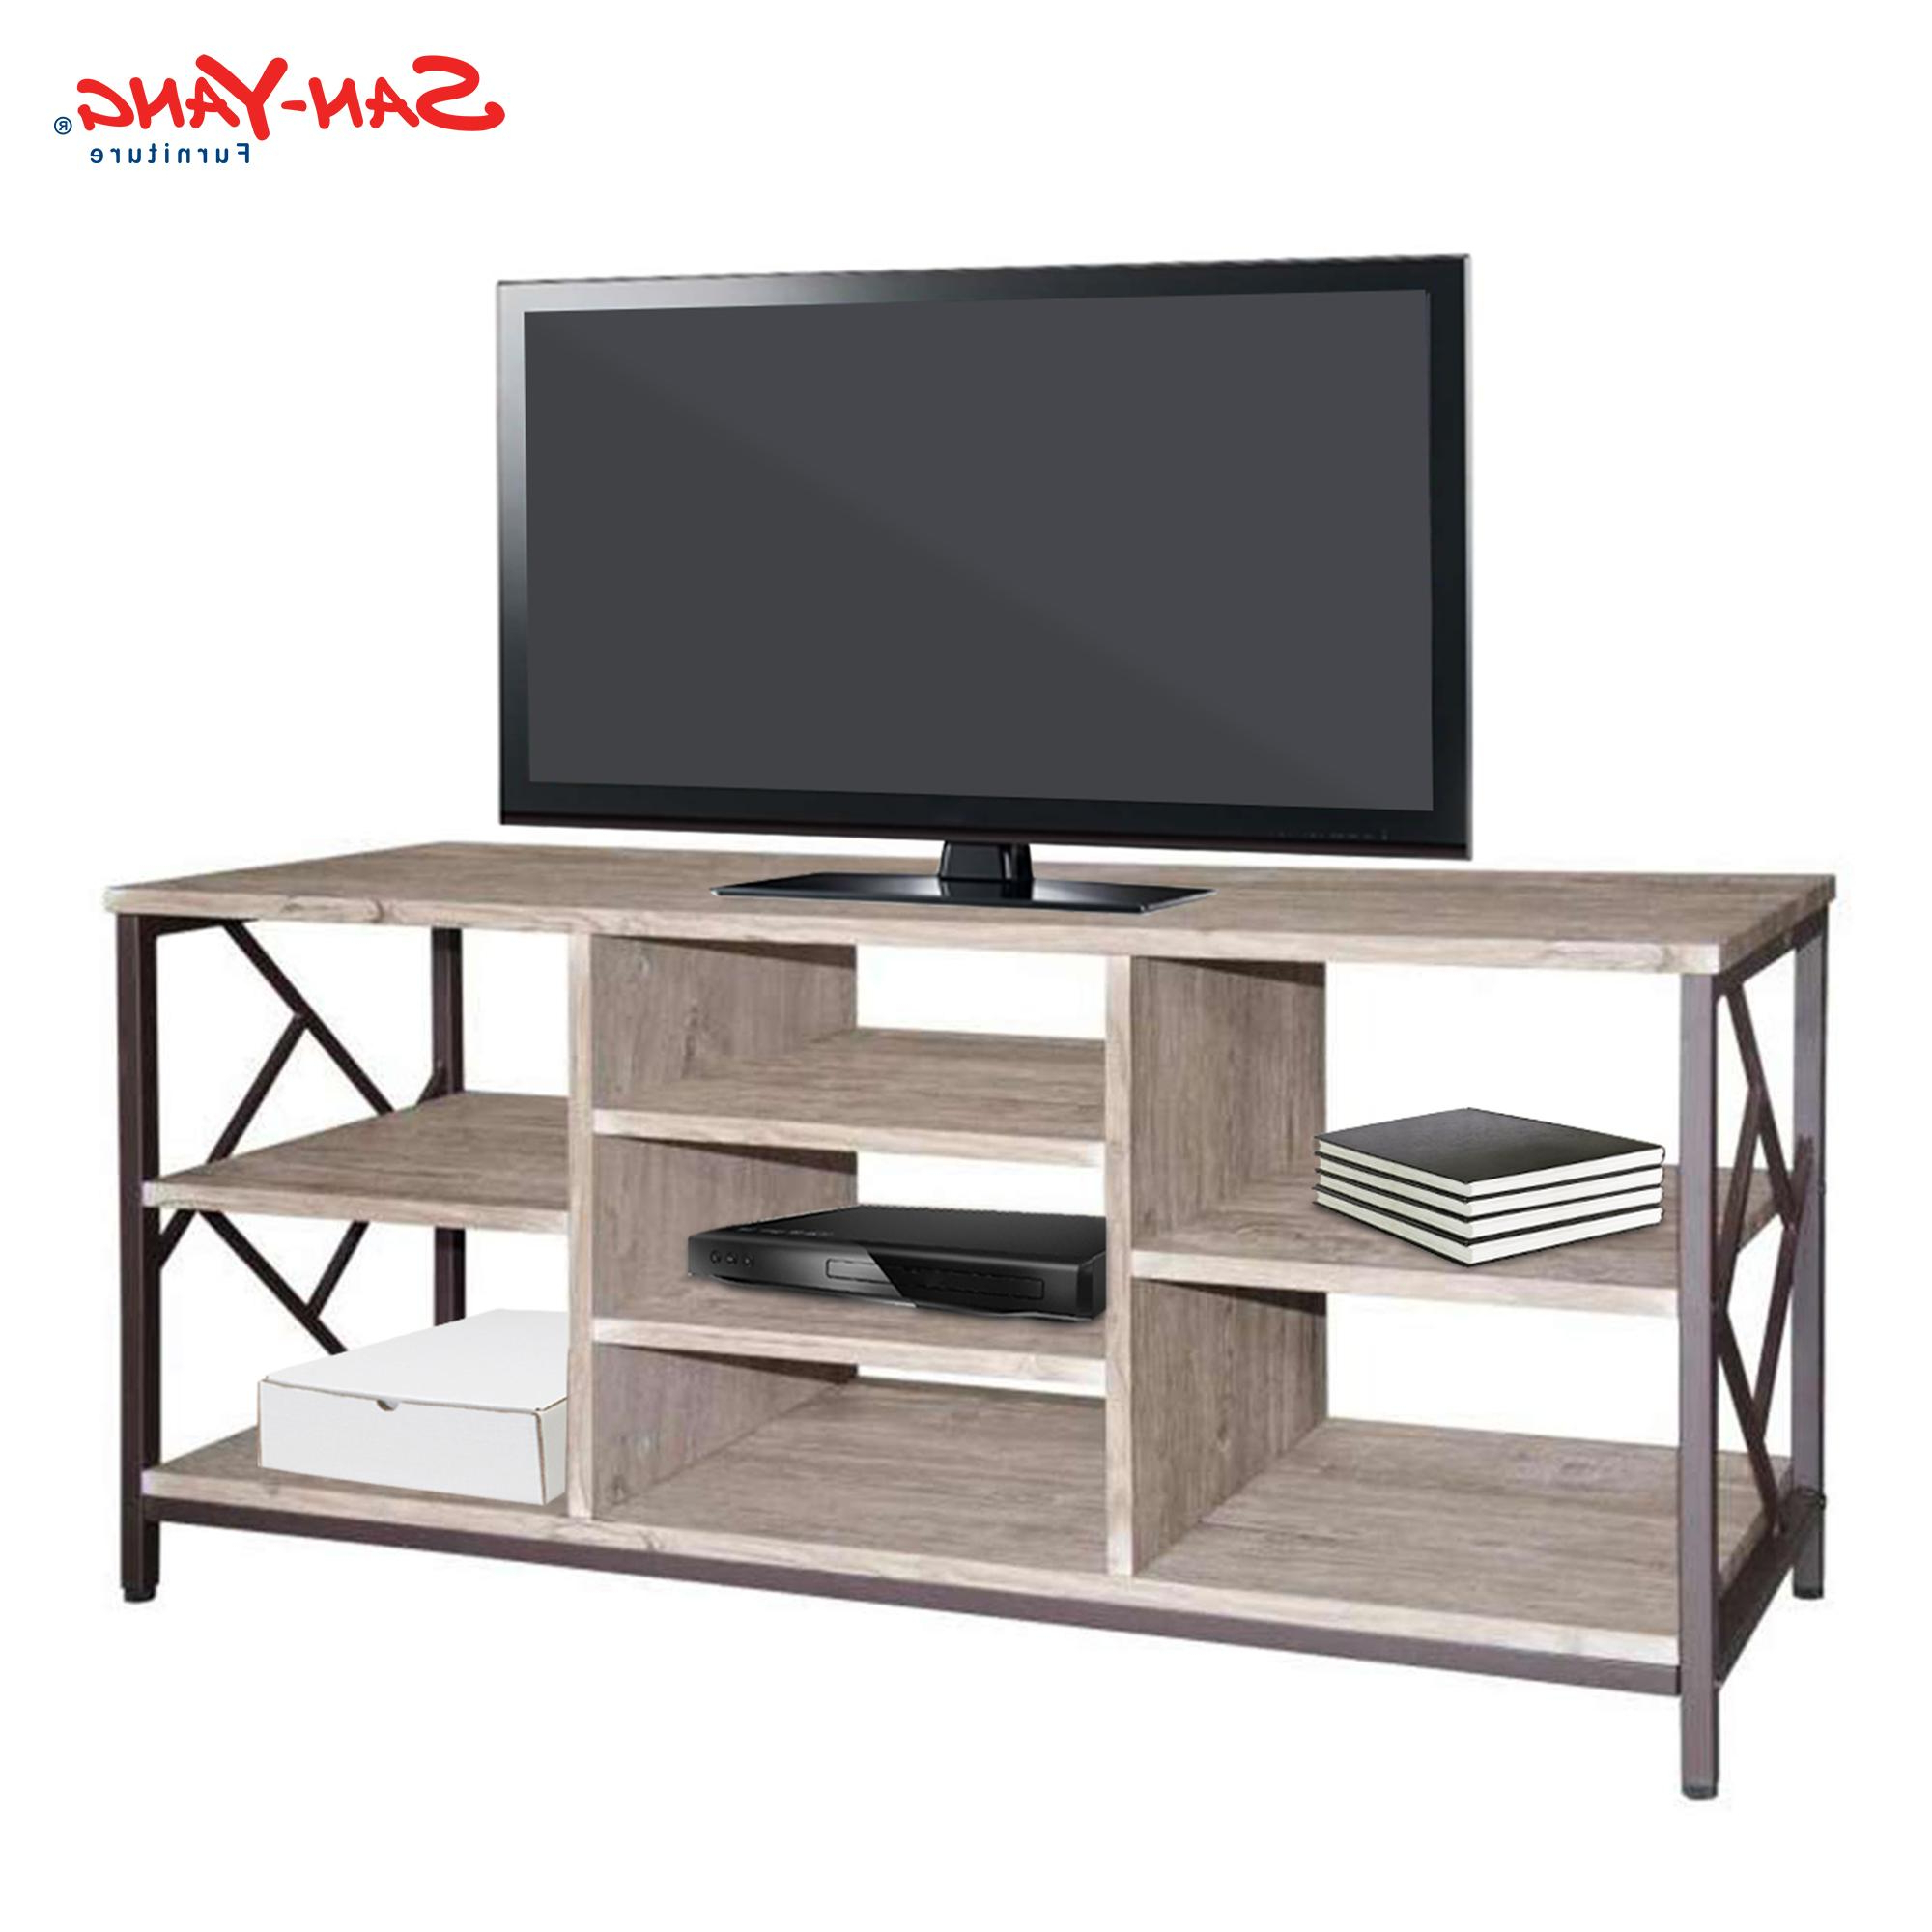 Well Known Tv Stands Over Cable Box For Tv Rack For Sale – Tv Cabinet Prices, Brands & Review In Philippines (View 18 of 20)